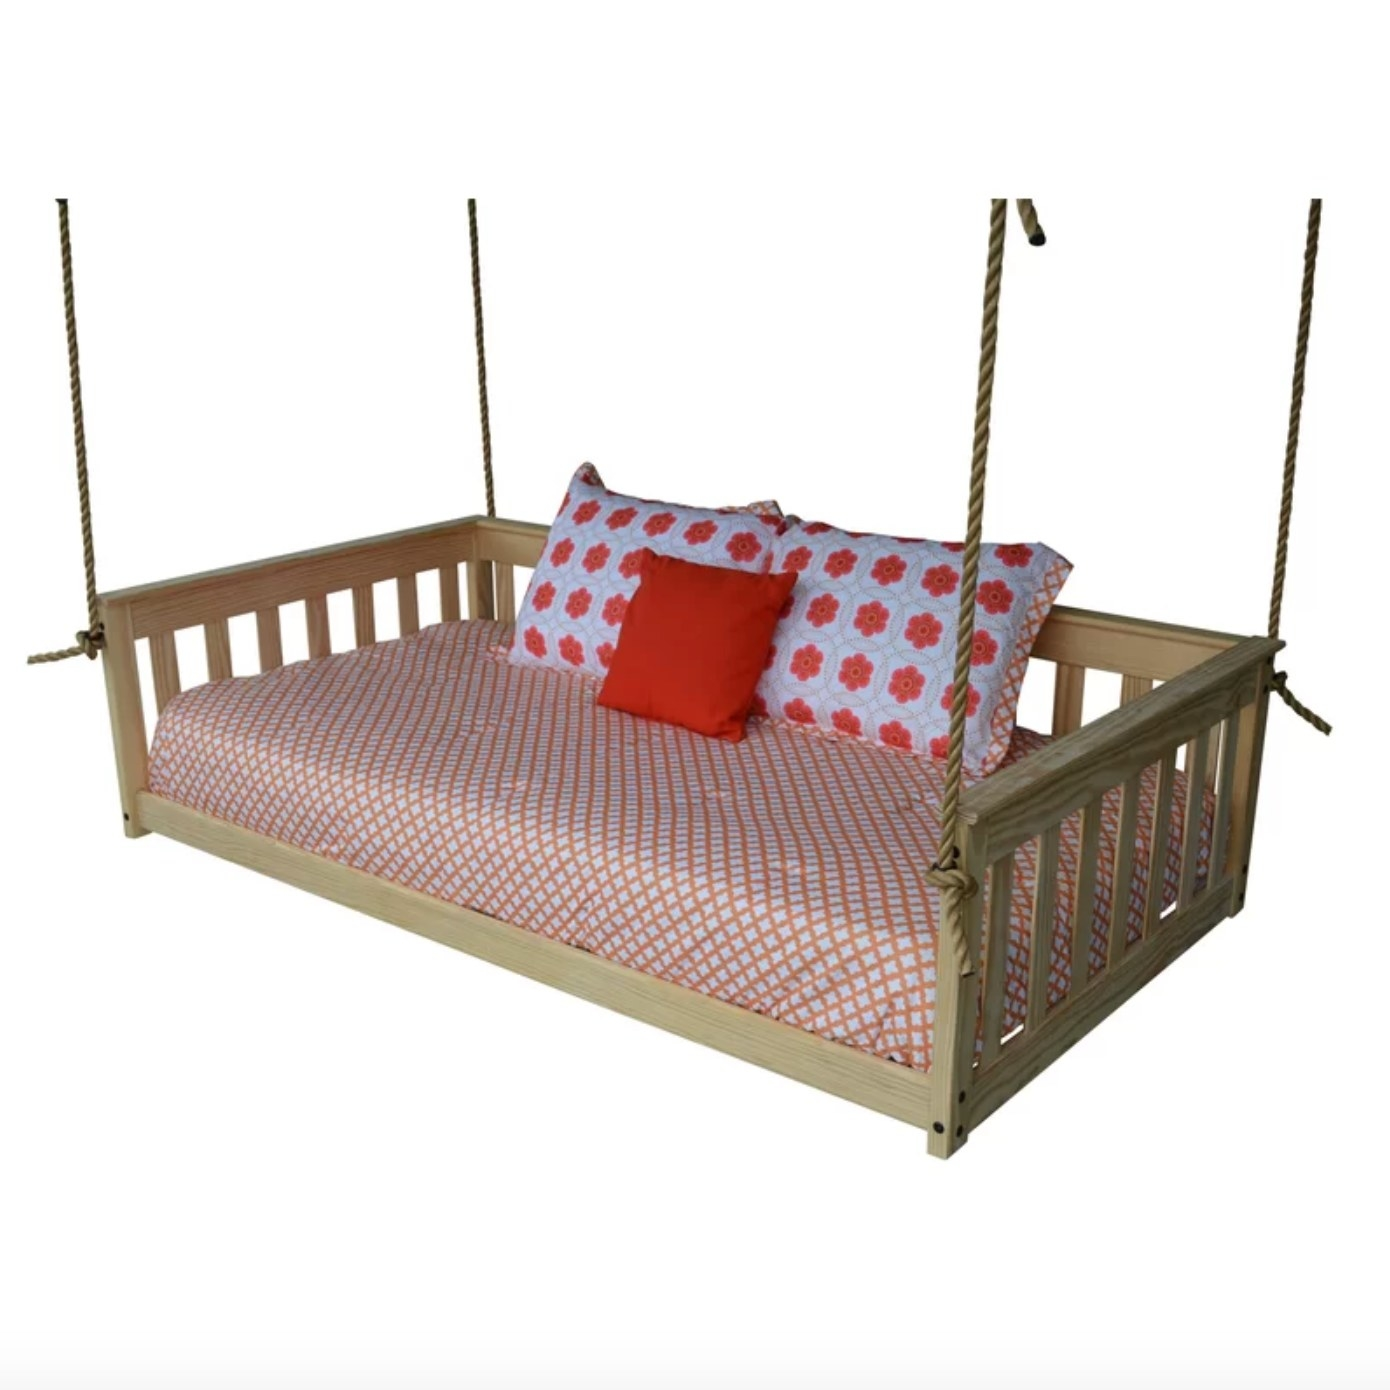 The hanging daybed in unfinished wood